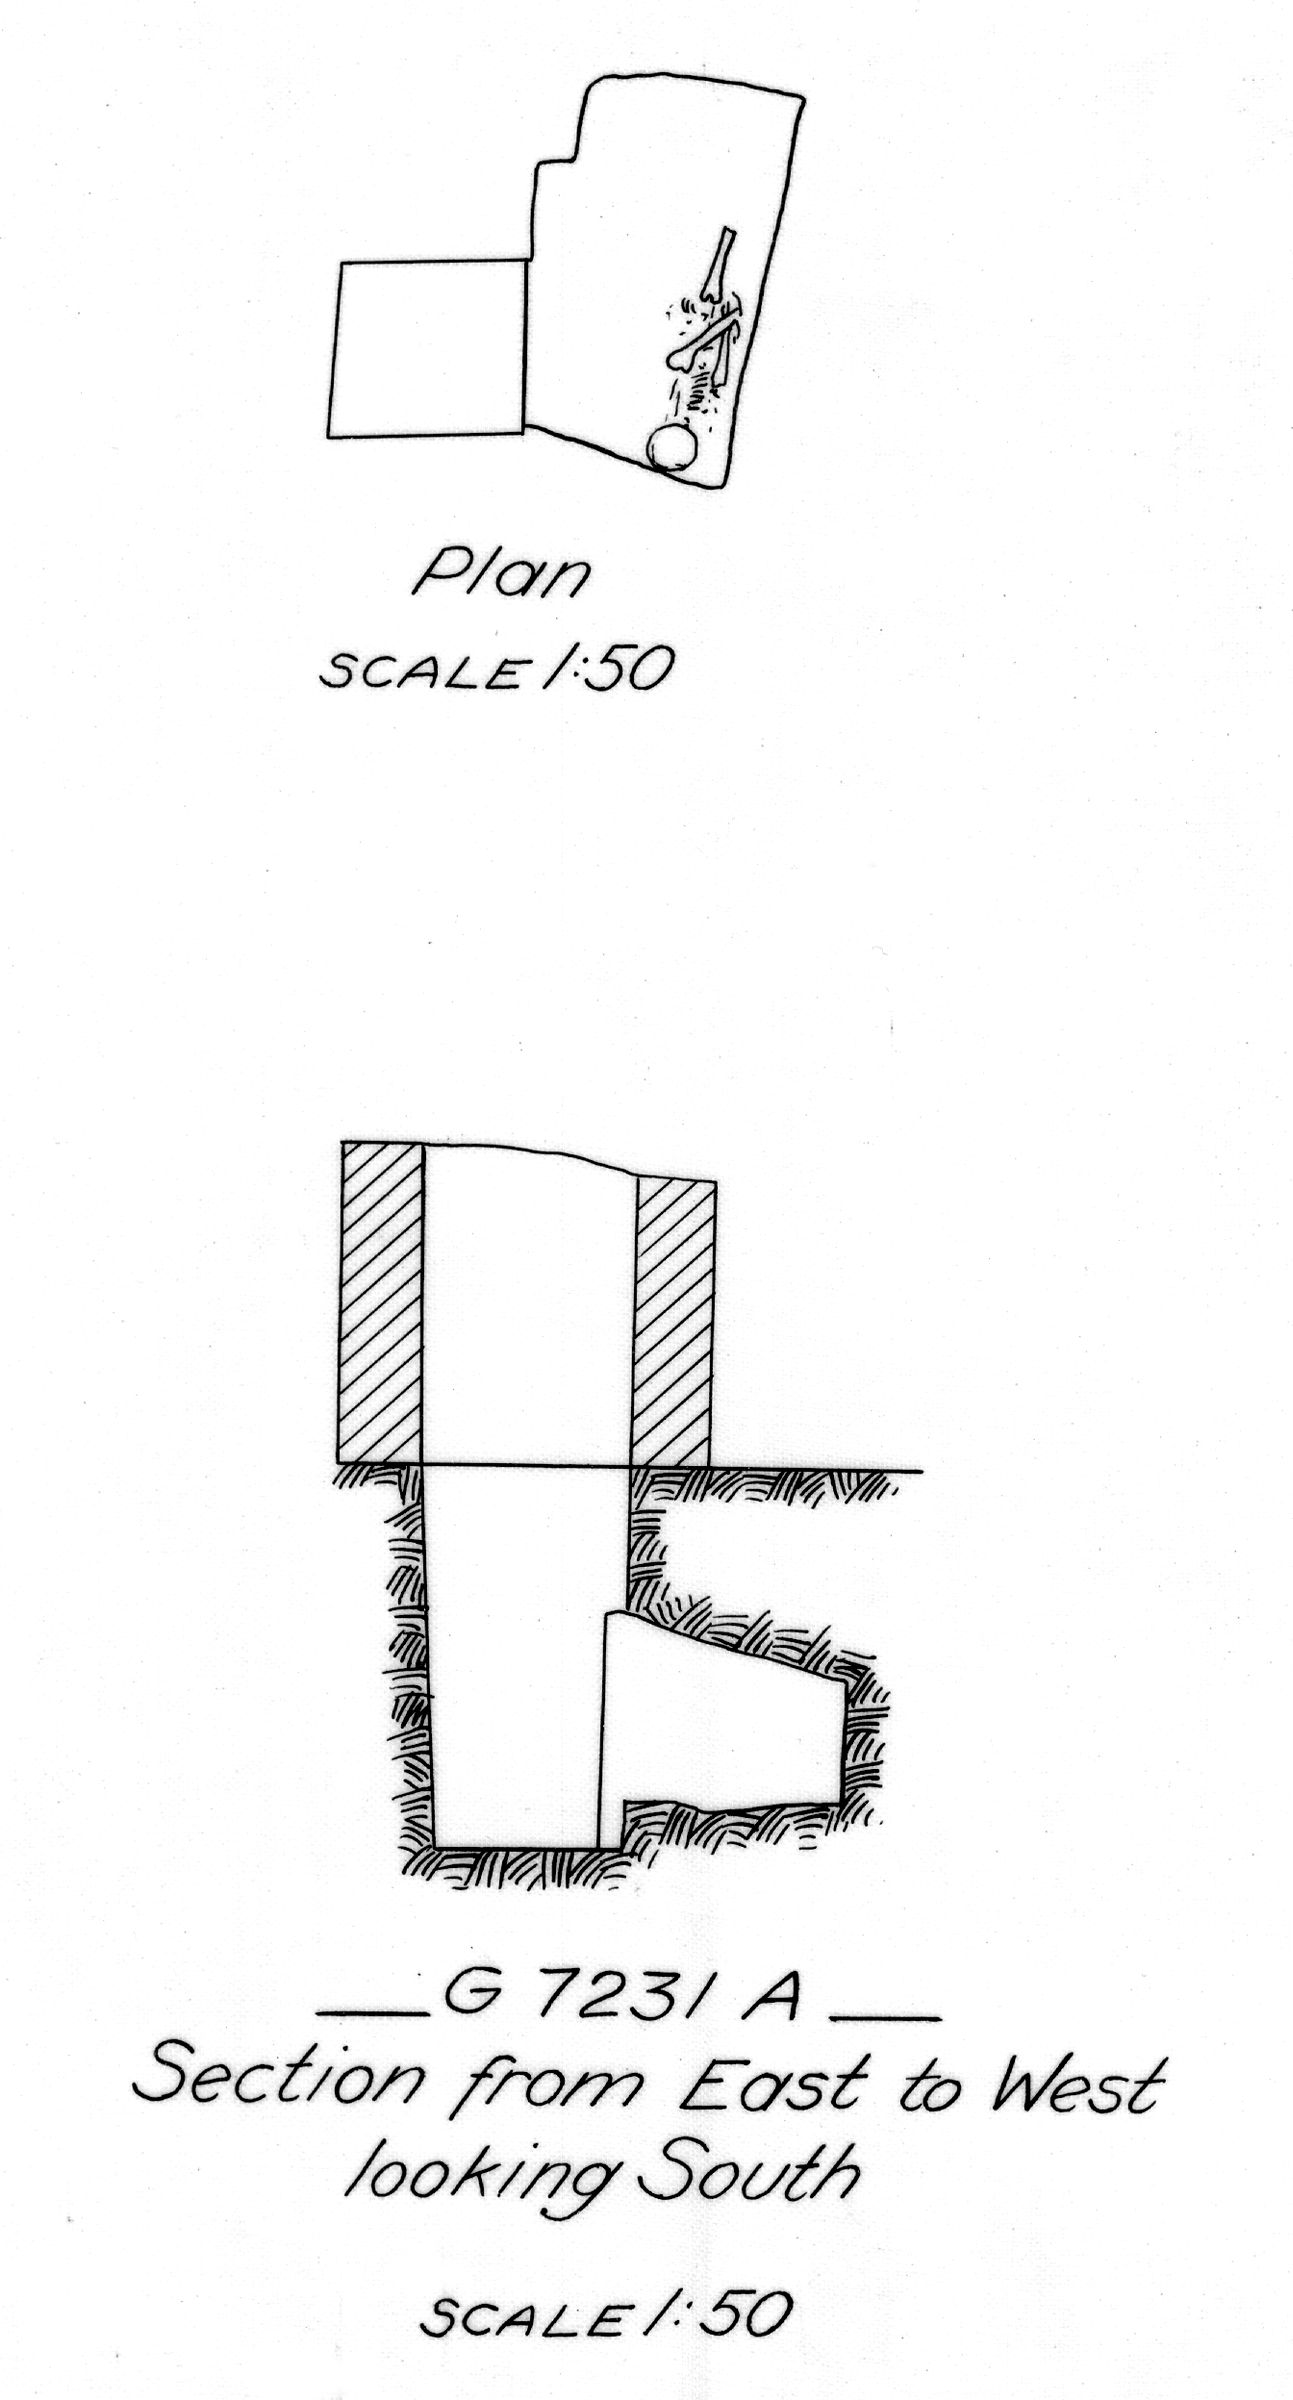 Maps and plans: G 7231, Shaft A